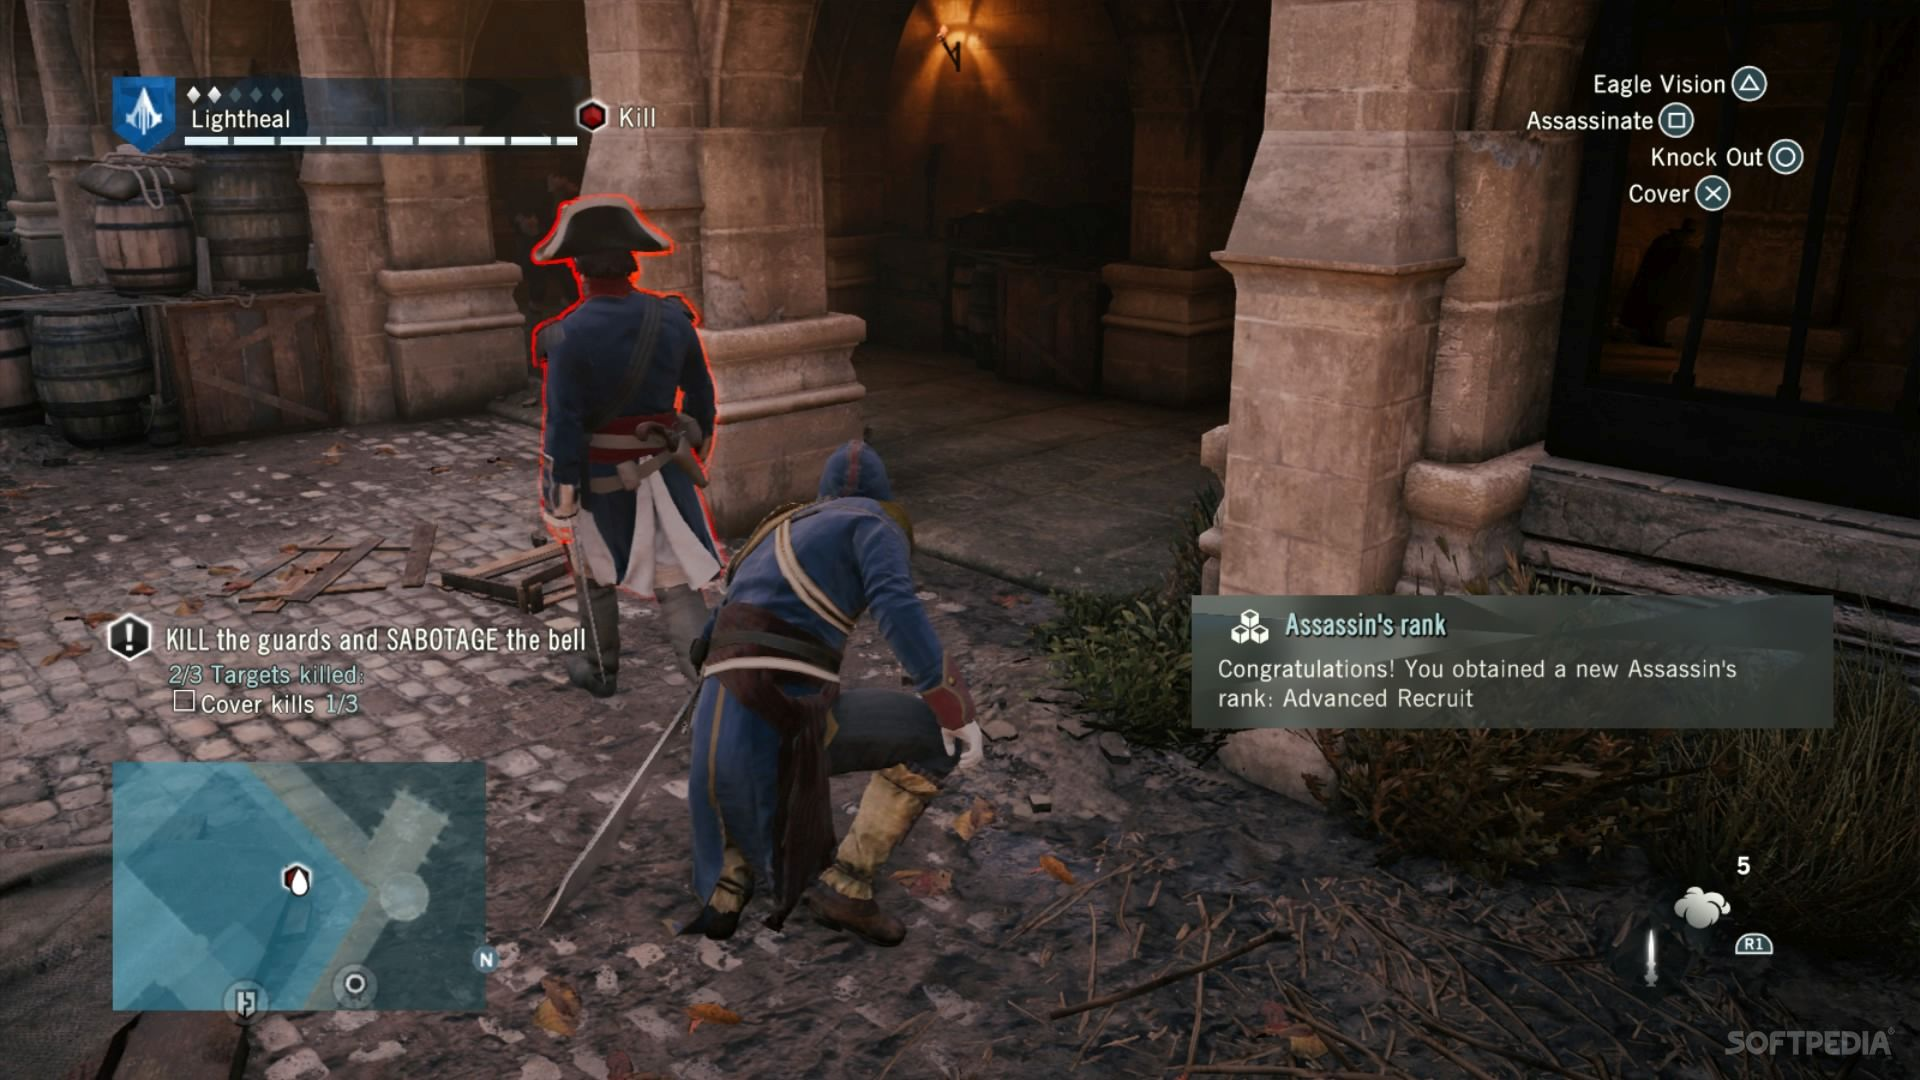 Assassin's Creed Unity Gets PS4 Patch to Fix